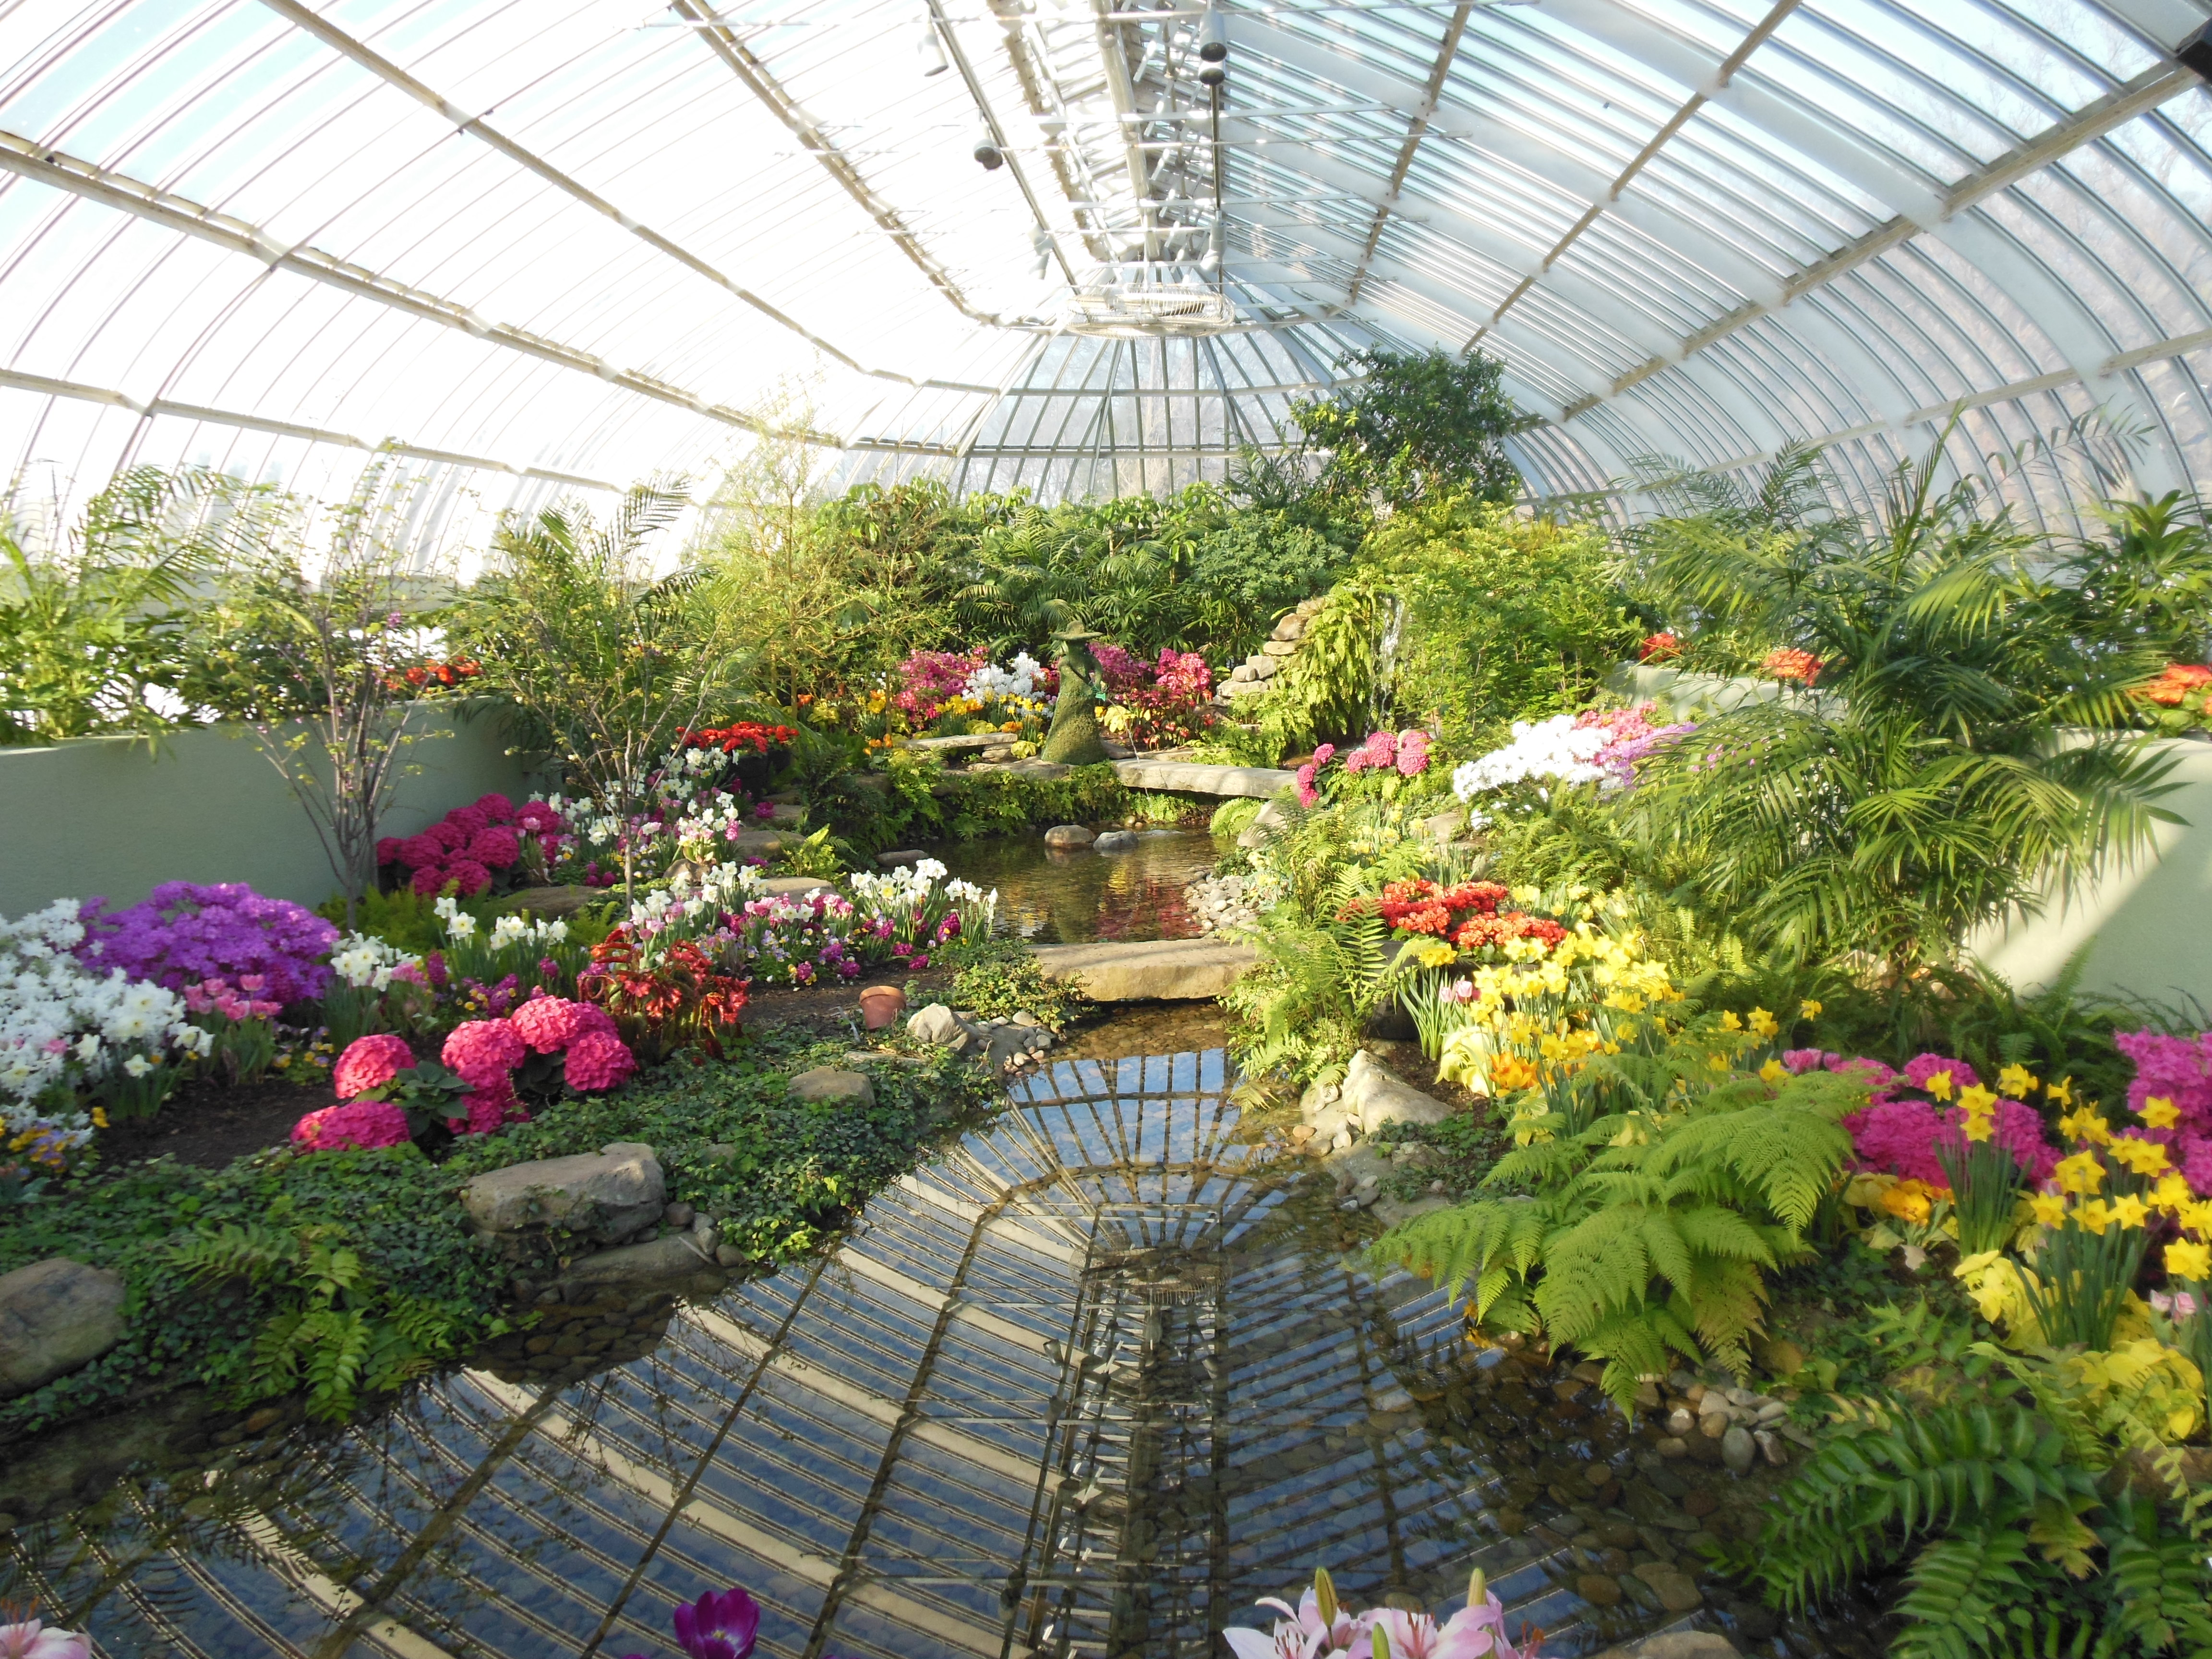 The Secret Garden Spring Flower Show At Phipps Conservatory Was So Exquisite I Had To Recharge